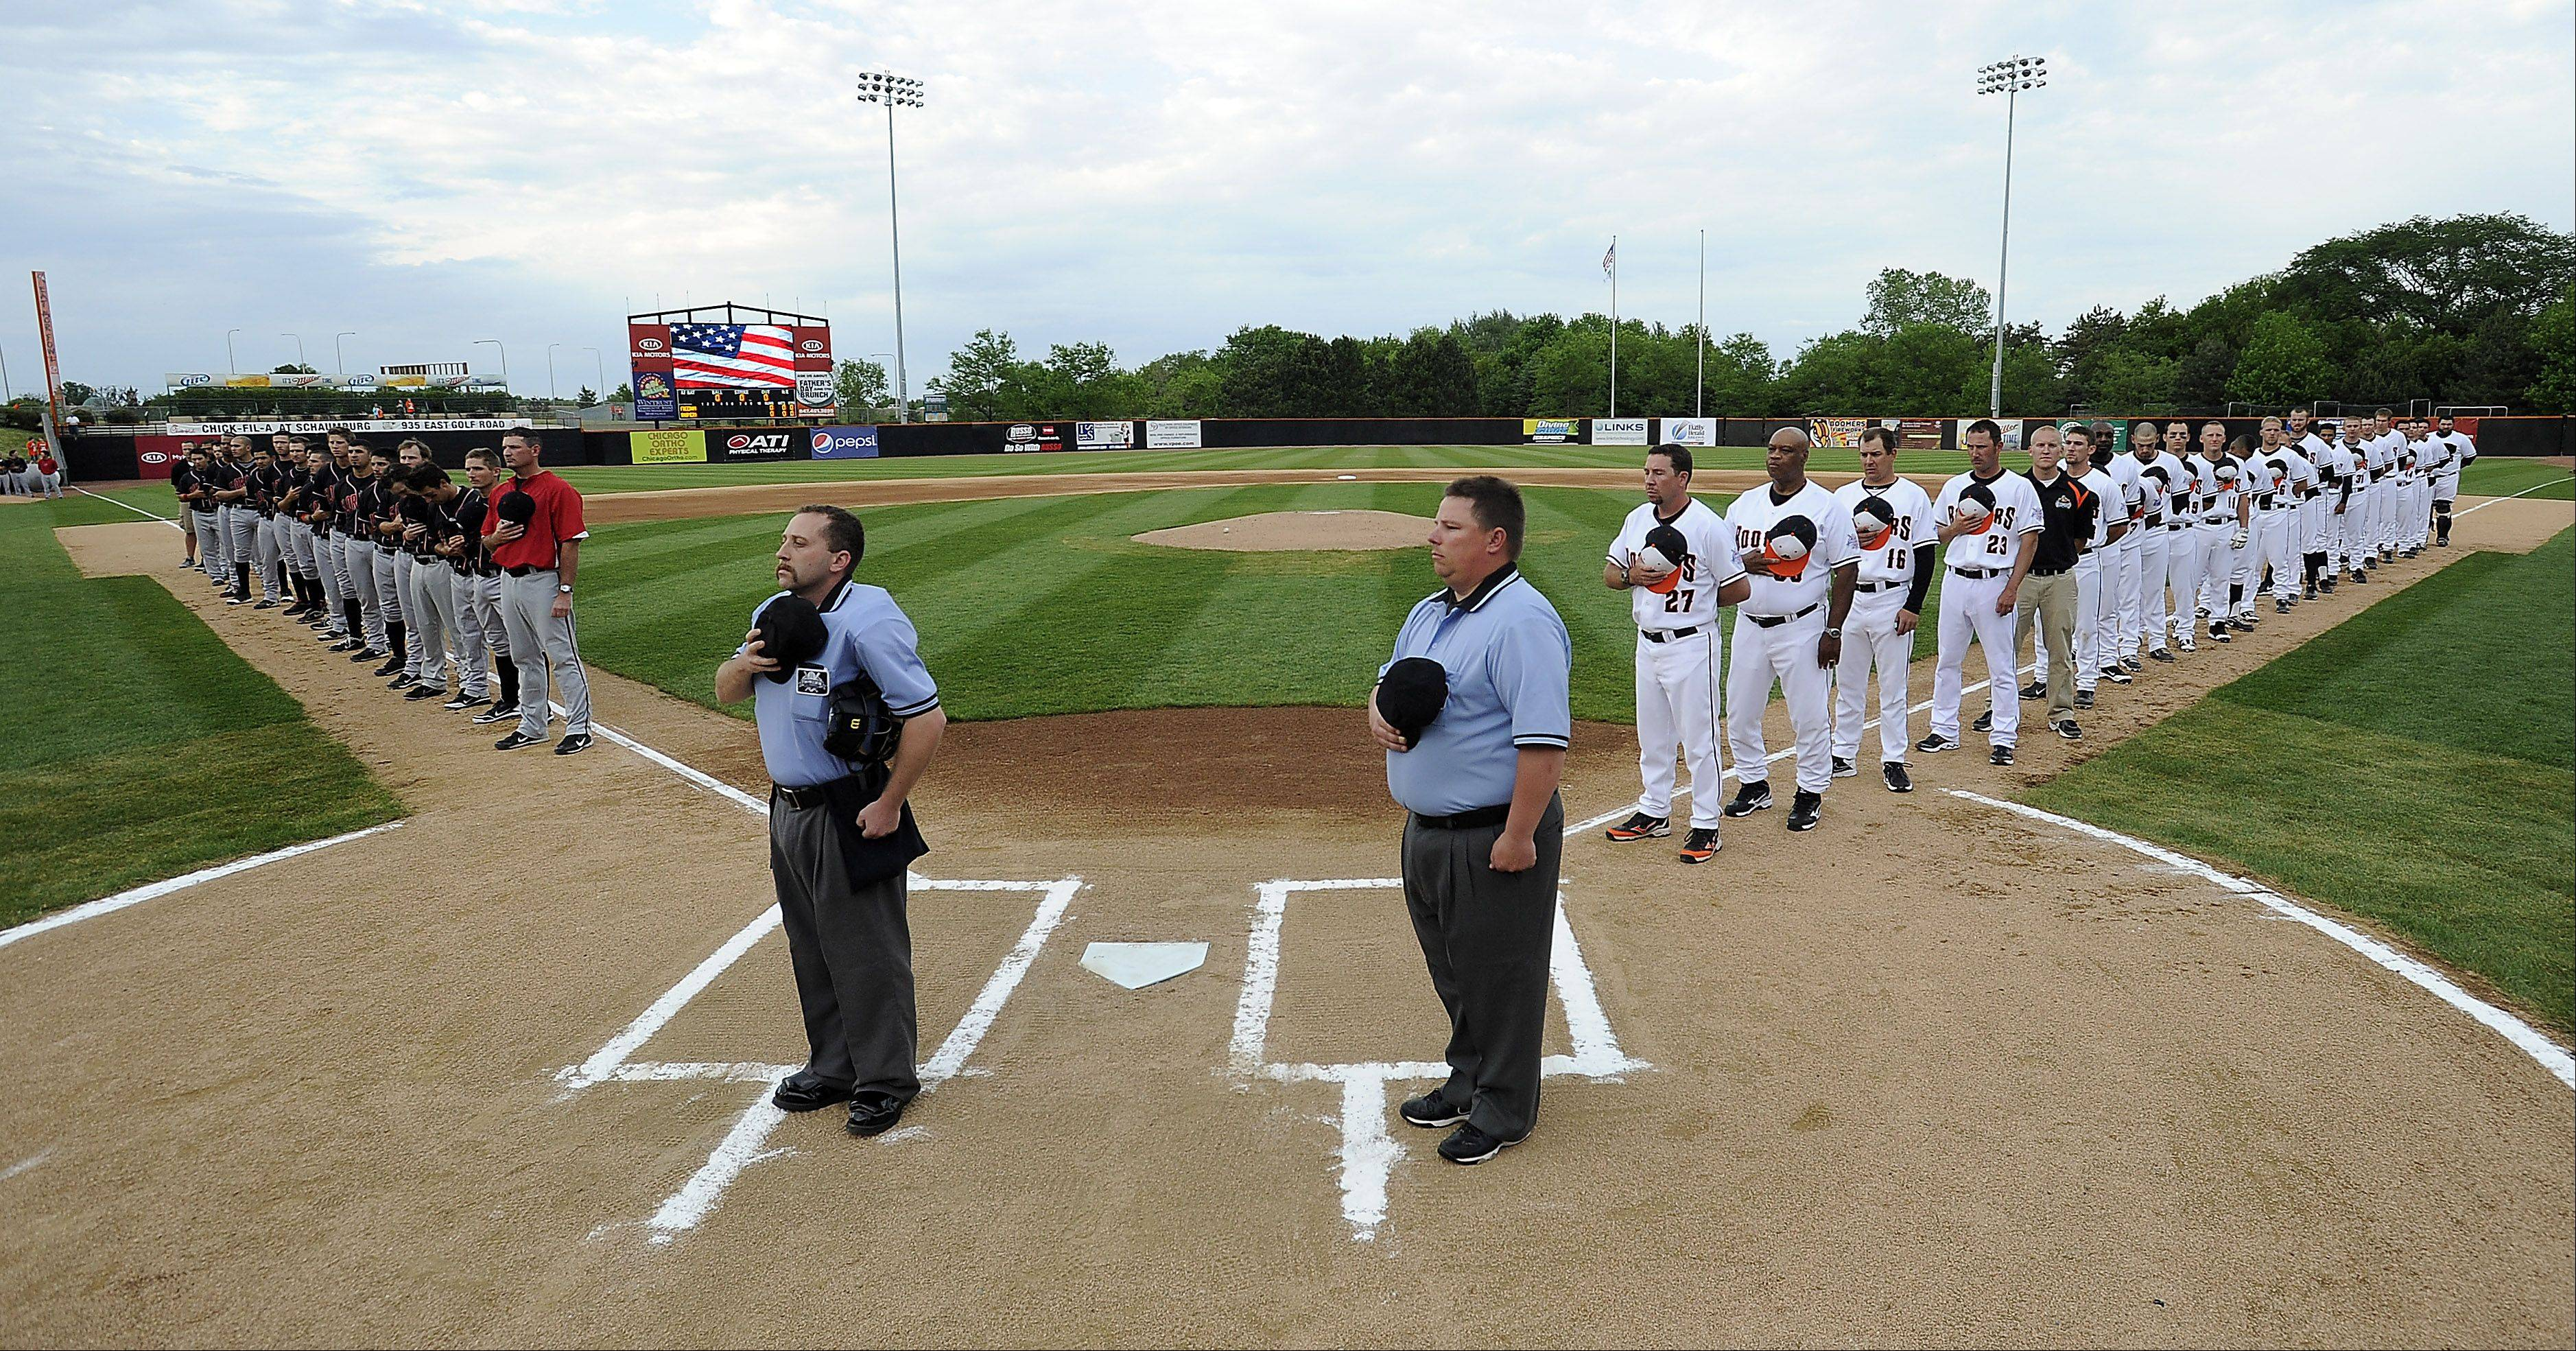 Baseball history in the making as the Schaumburg Boomers and the Florence Freedom players take the field at Boomers Stadium in Schaumburg on Friday.